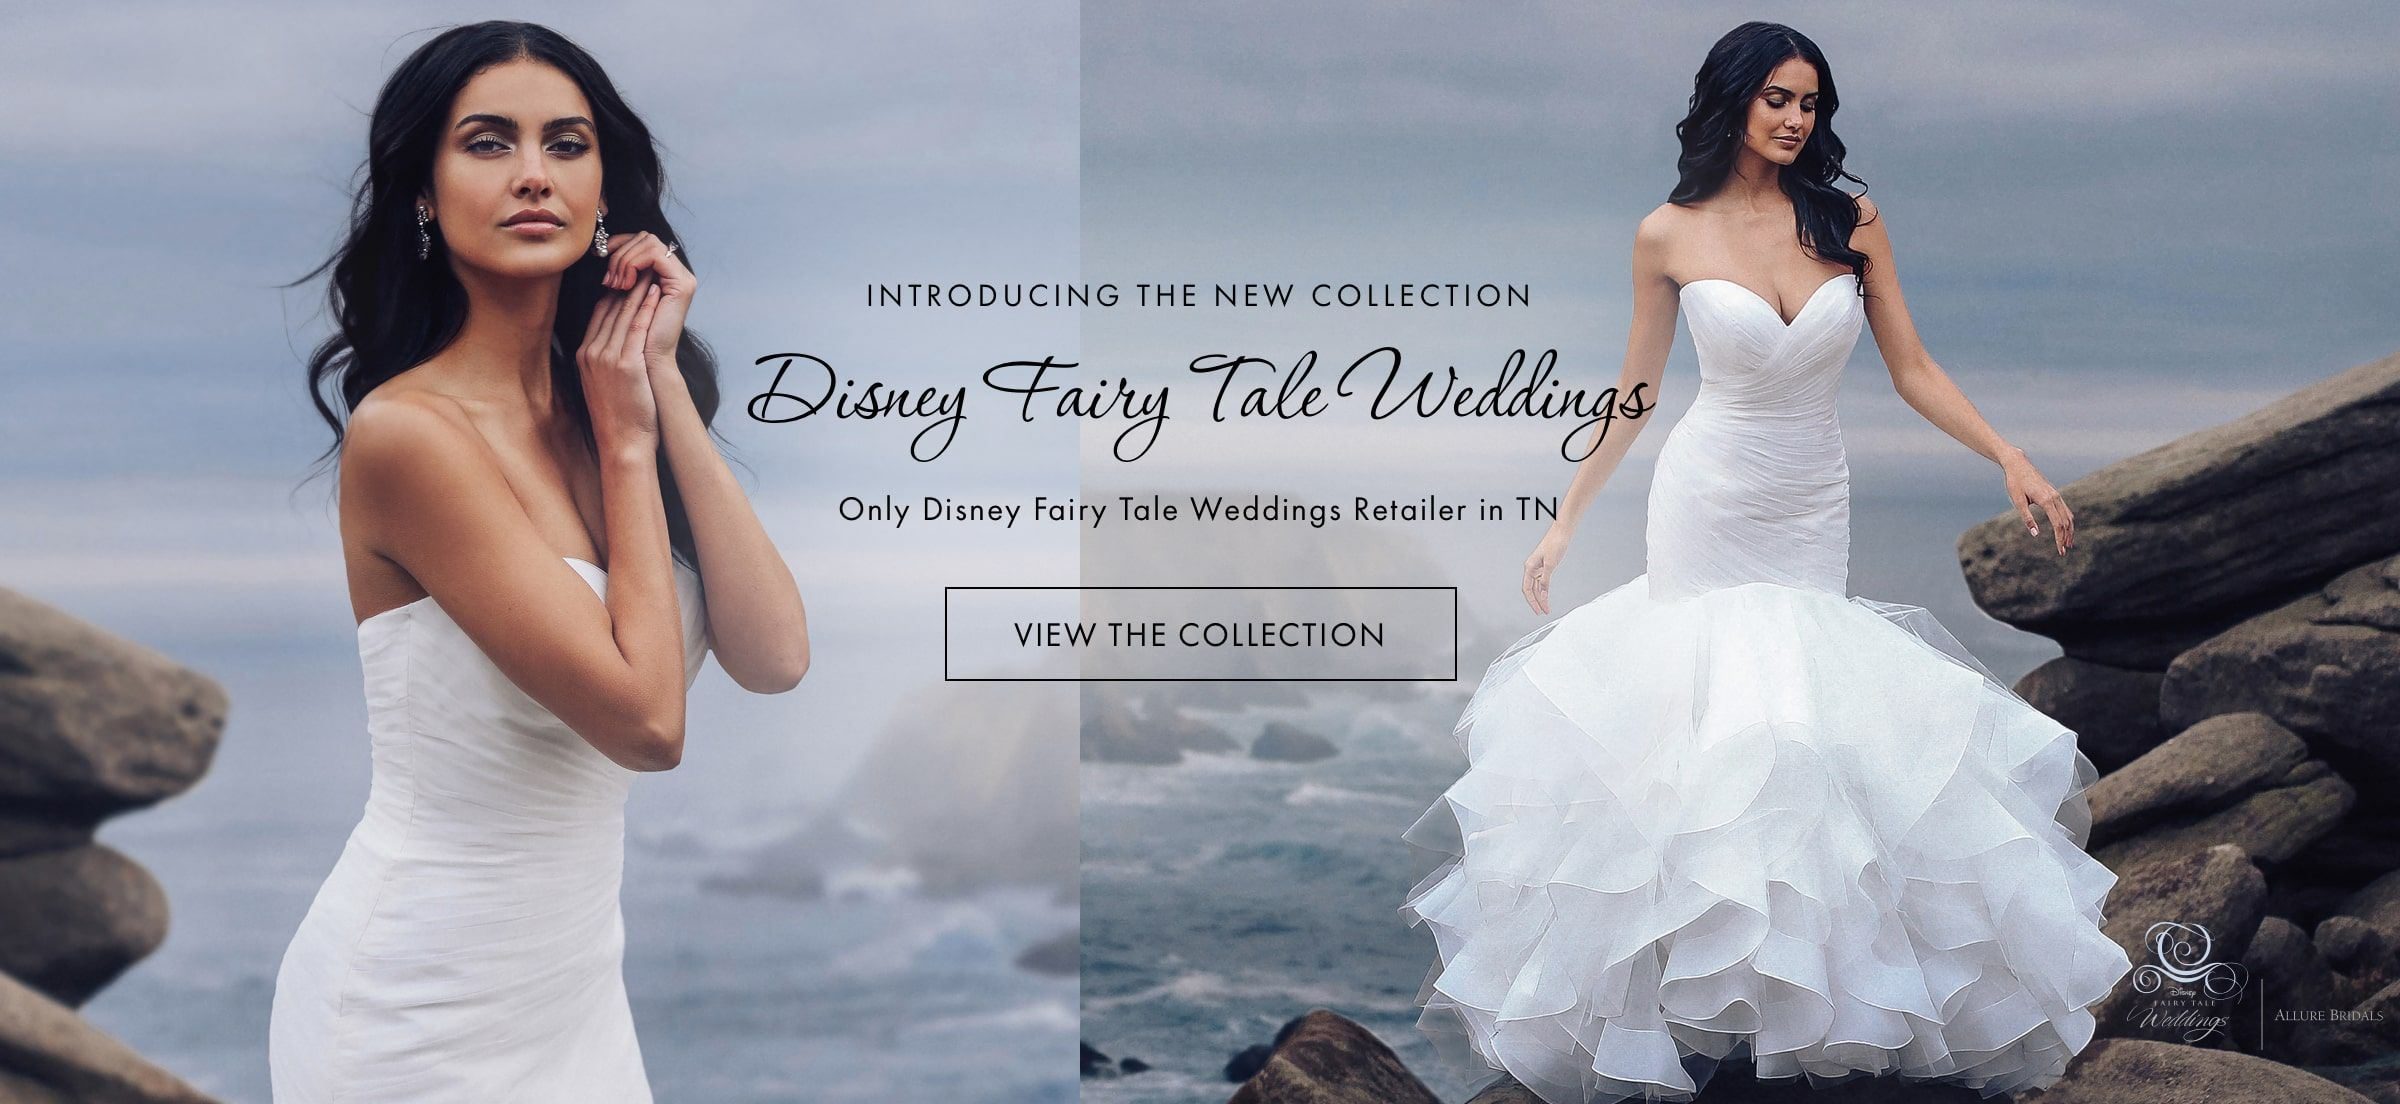 Woman wearing Disney Wedding Dress at Beach Wedding Desktop